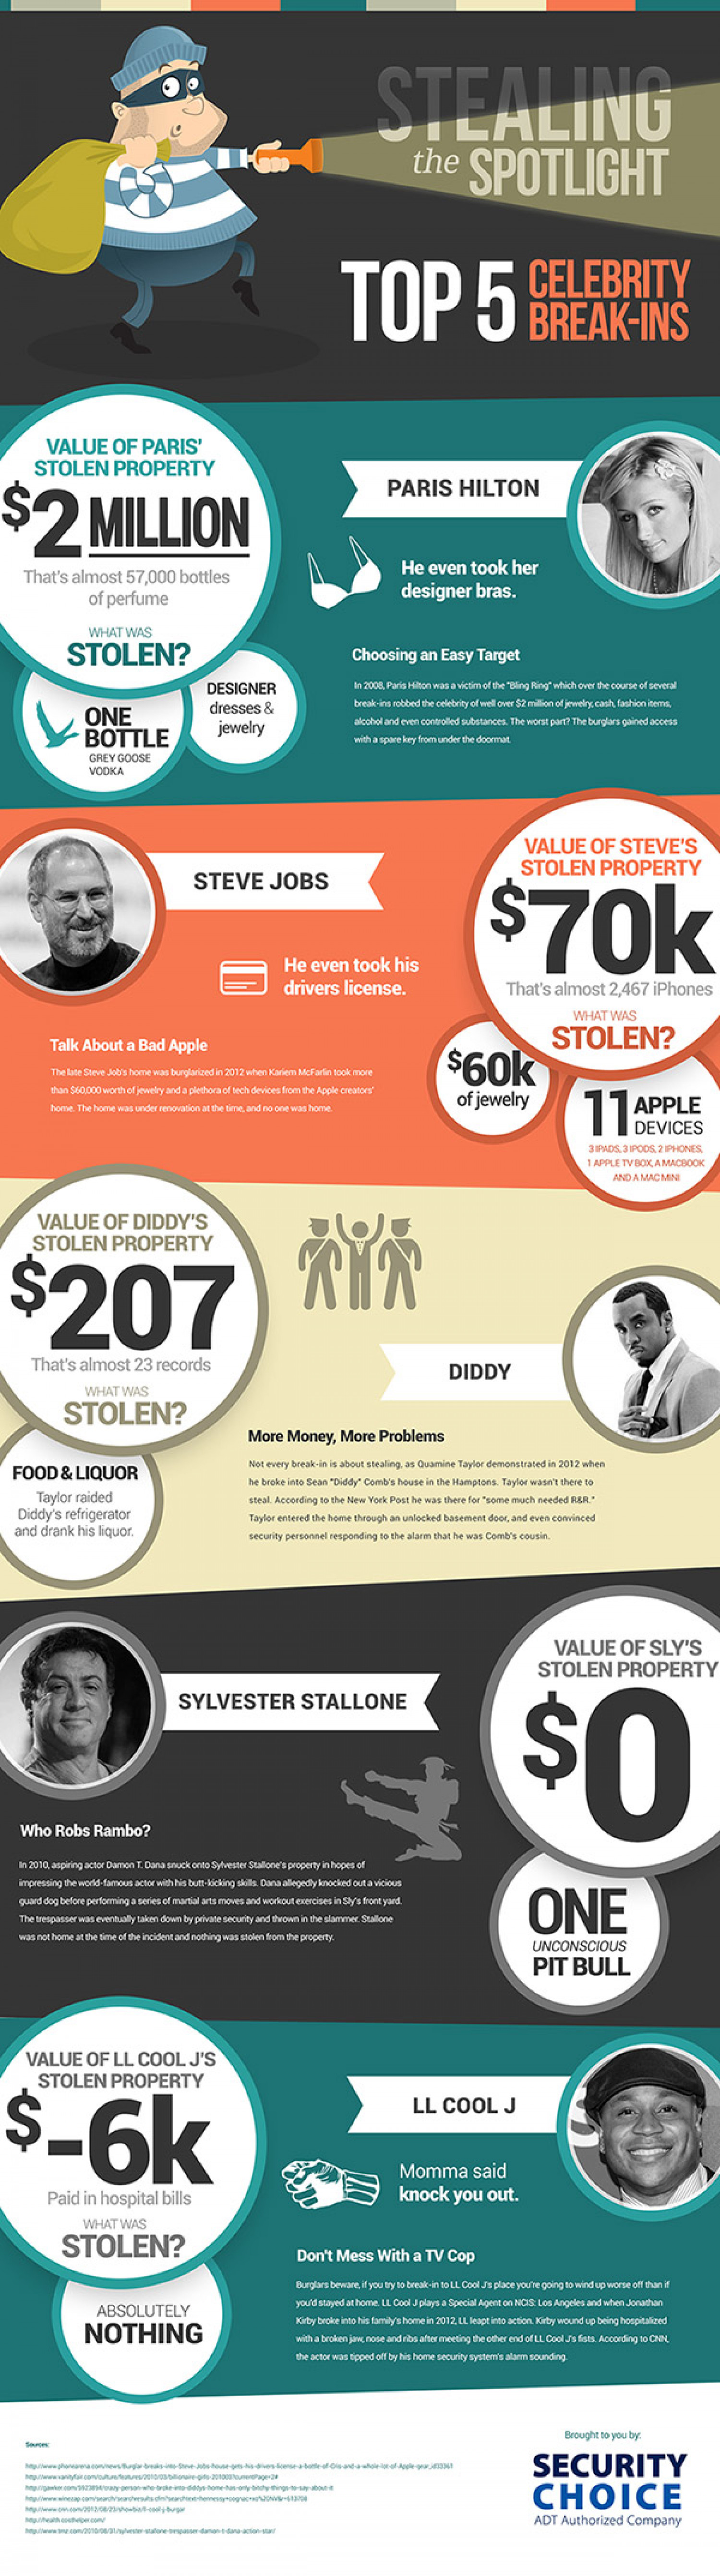 Stealing the Spotlight Infographic